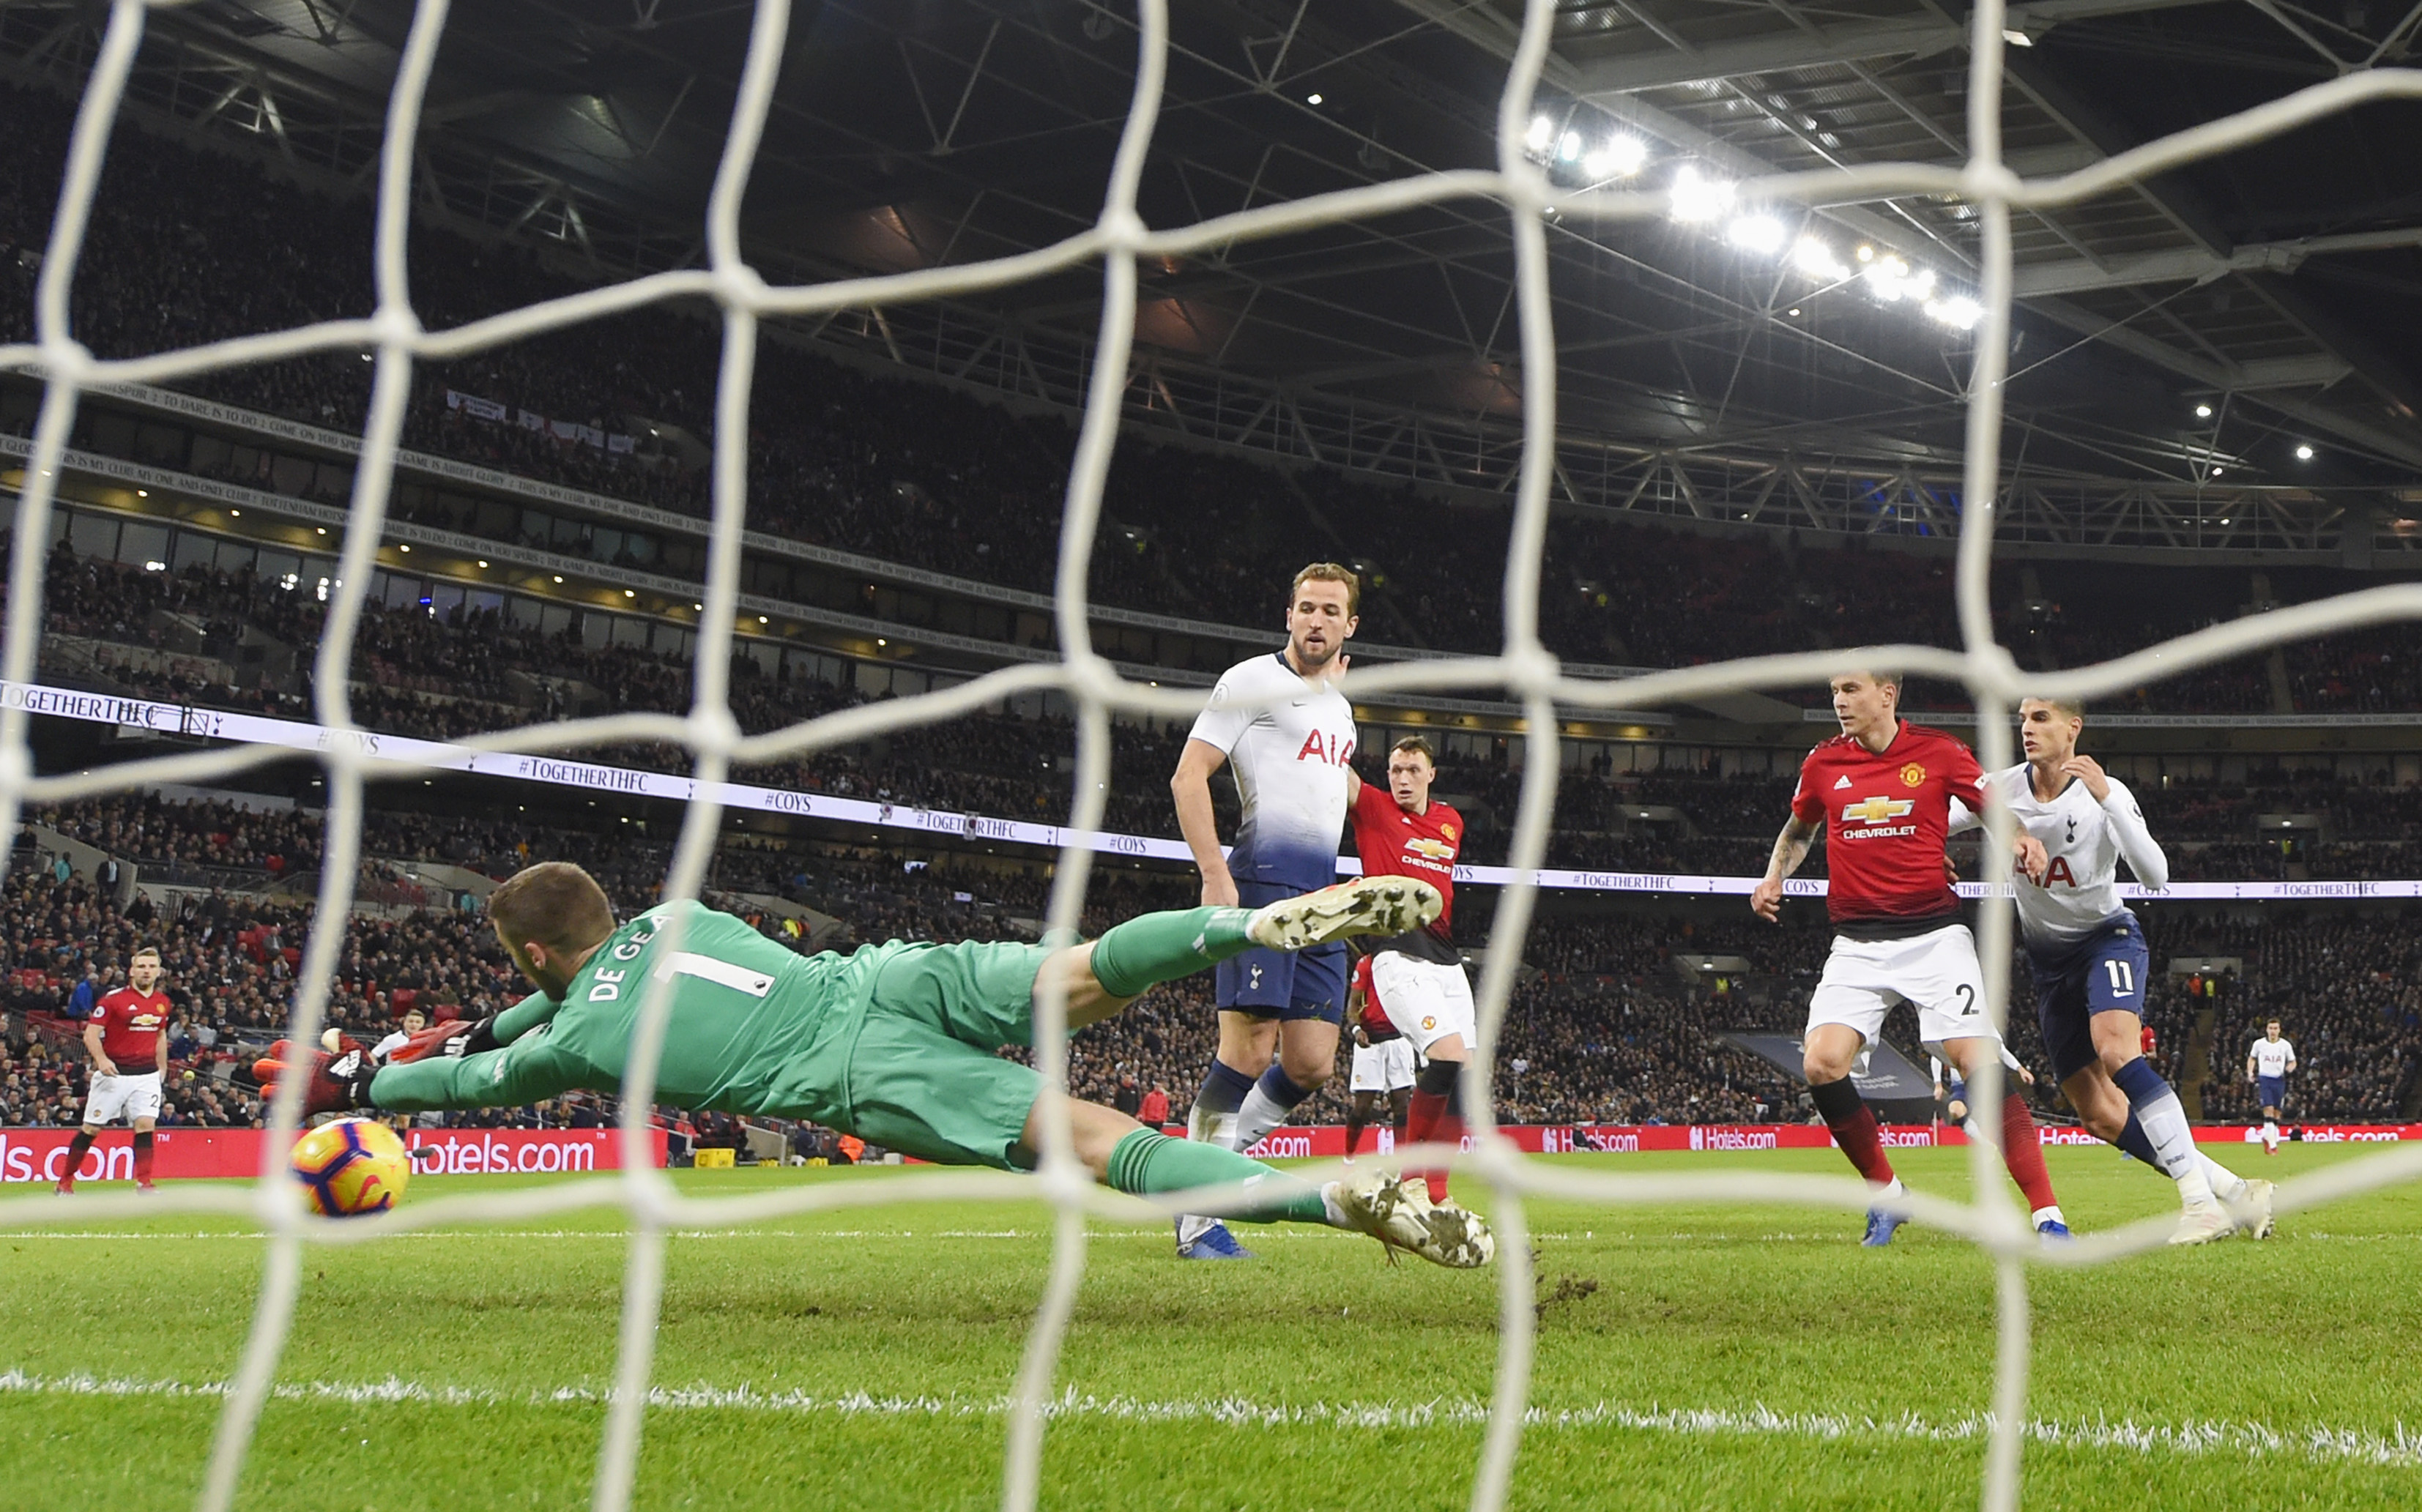 Football: Spurs' Pochettino recalls how he cheered United counterpart Solskjaer's 1999 Champions League final goal